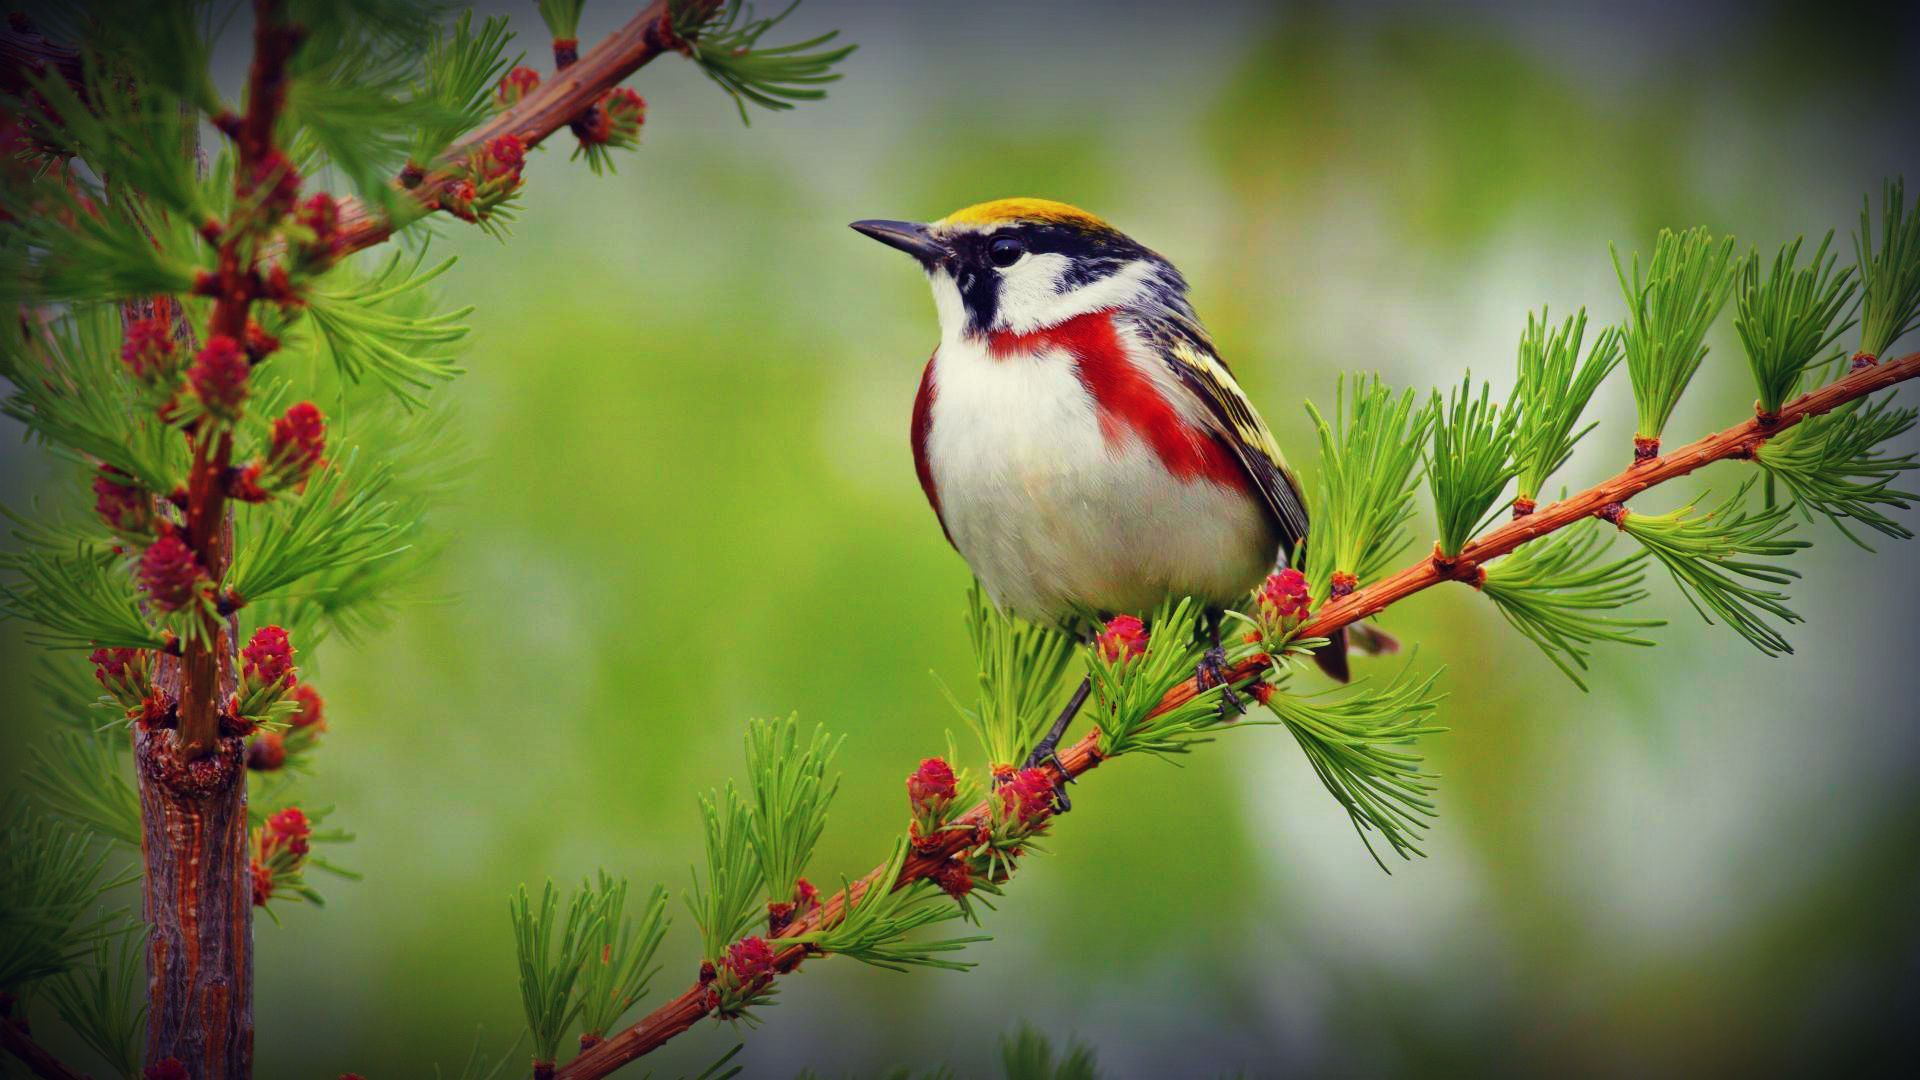 Birds Wallpaper Hd Posted By Michelle Cunningham